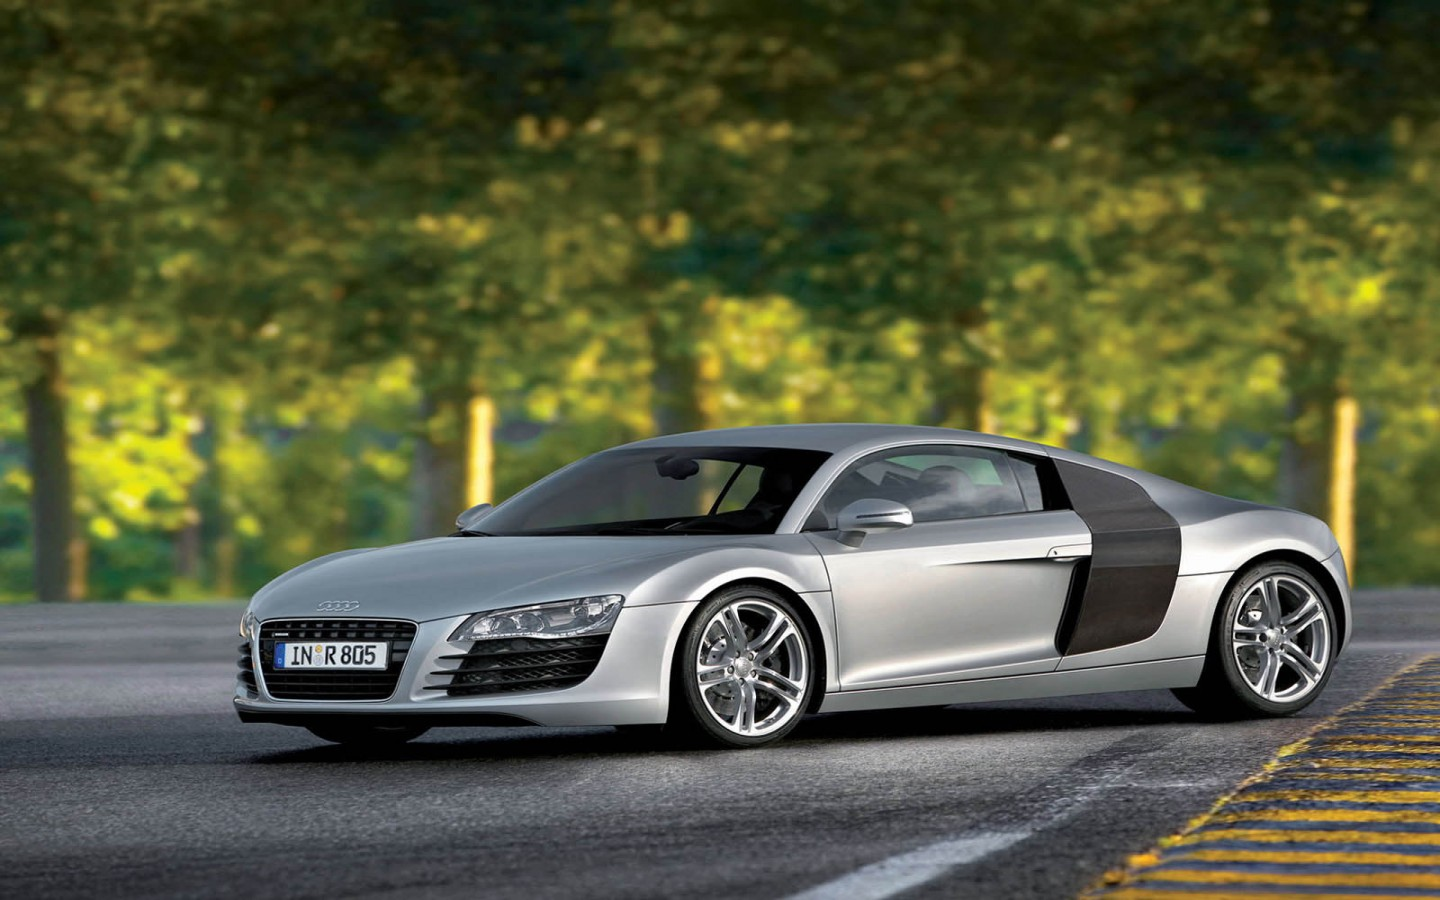 HD Car Wallpapers: Audi R8 HD Wallpaper